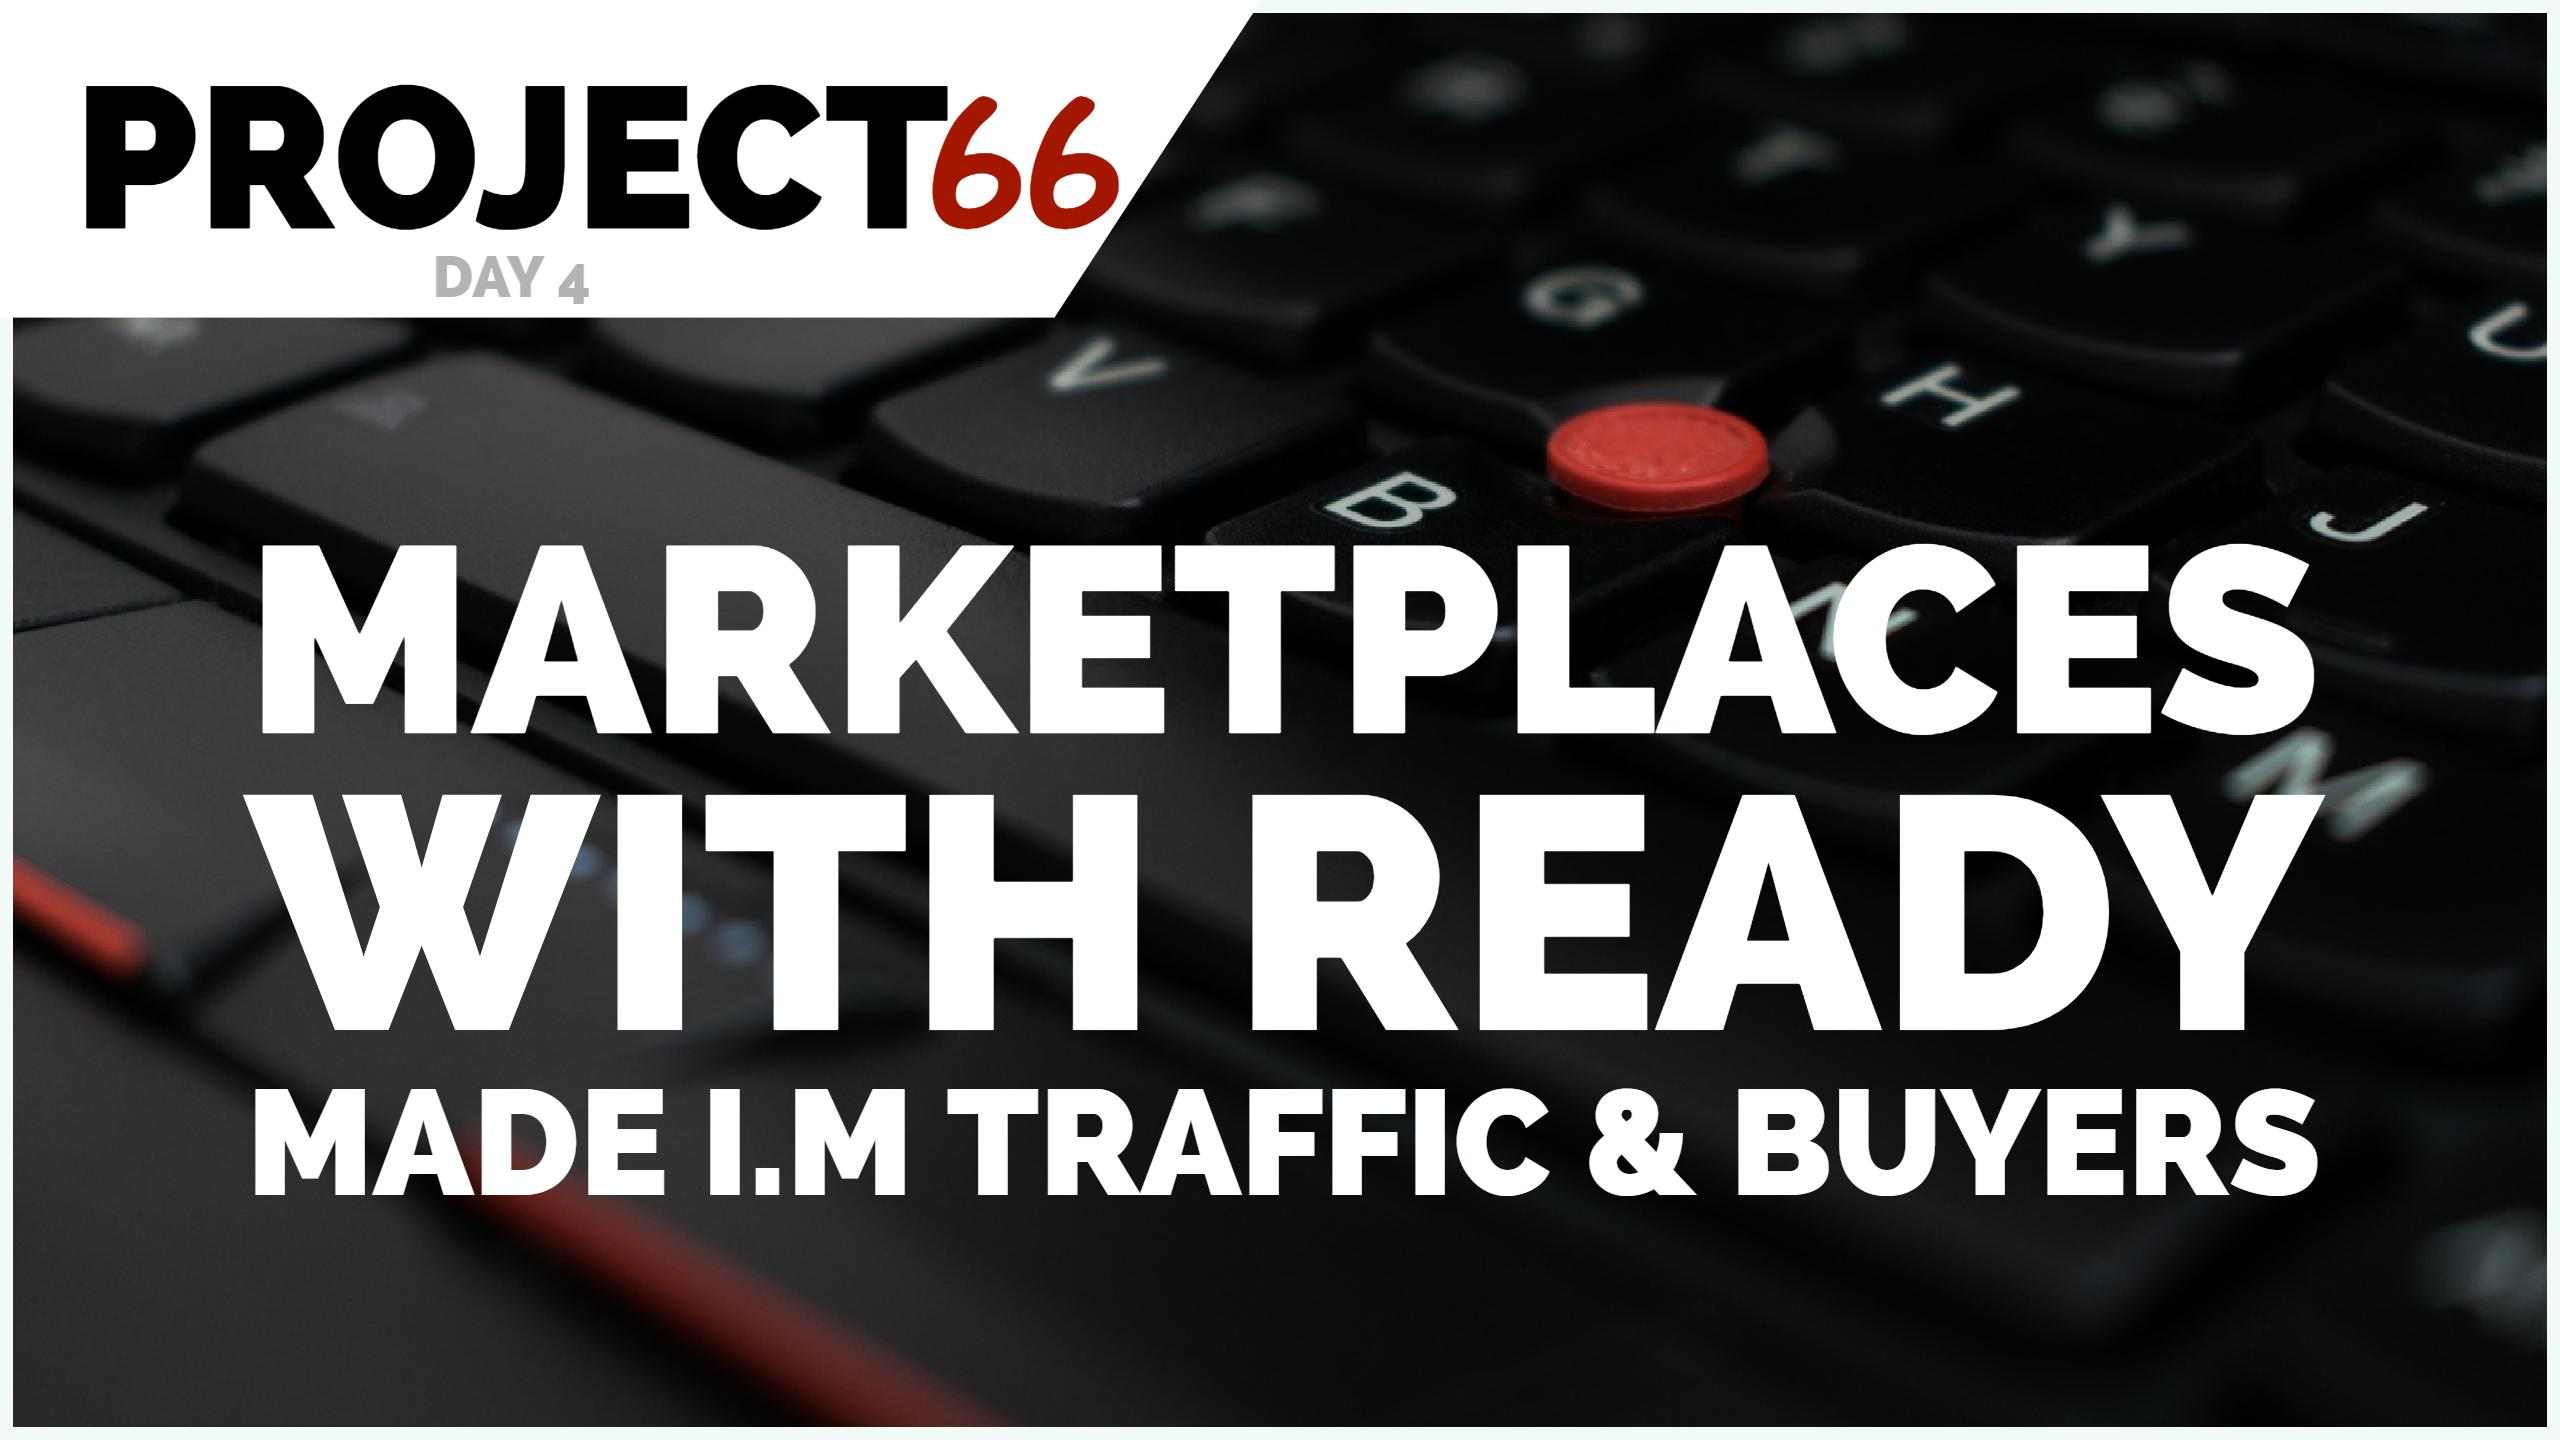 Project66 Day 4 – Fast, Easy, Ready Made Internet Marketing Buyer Traffic Platforms